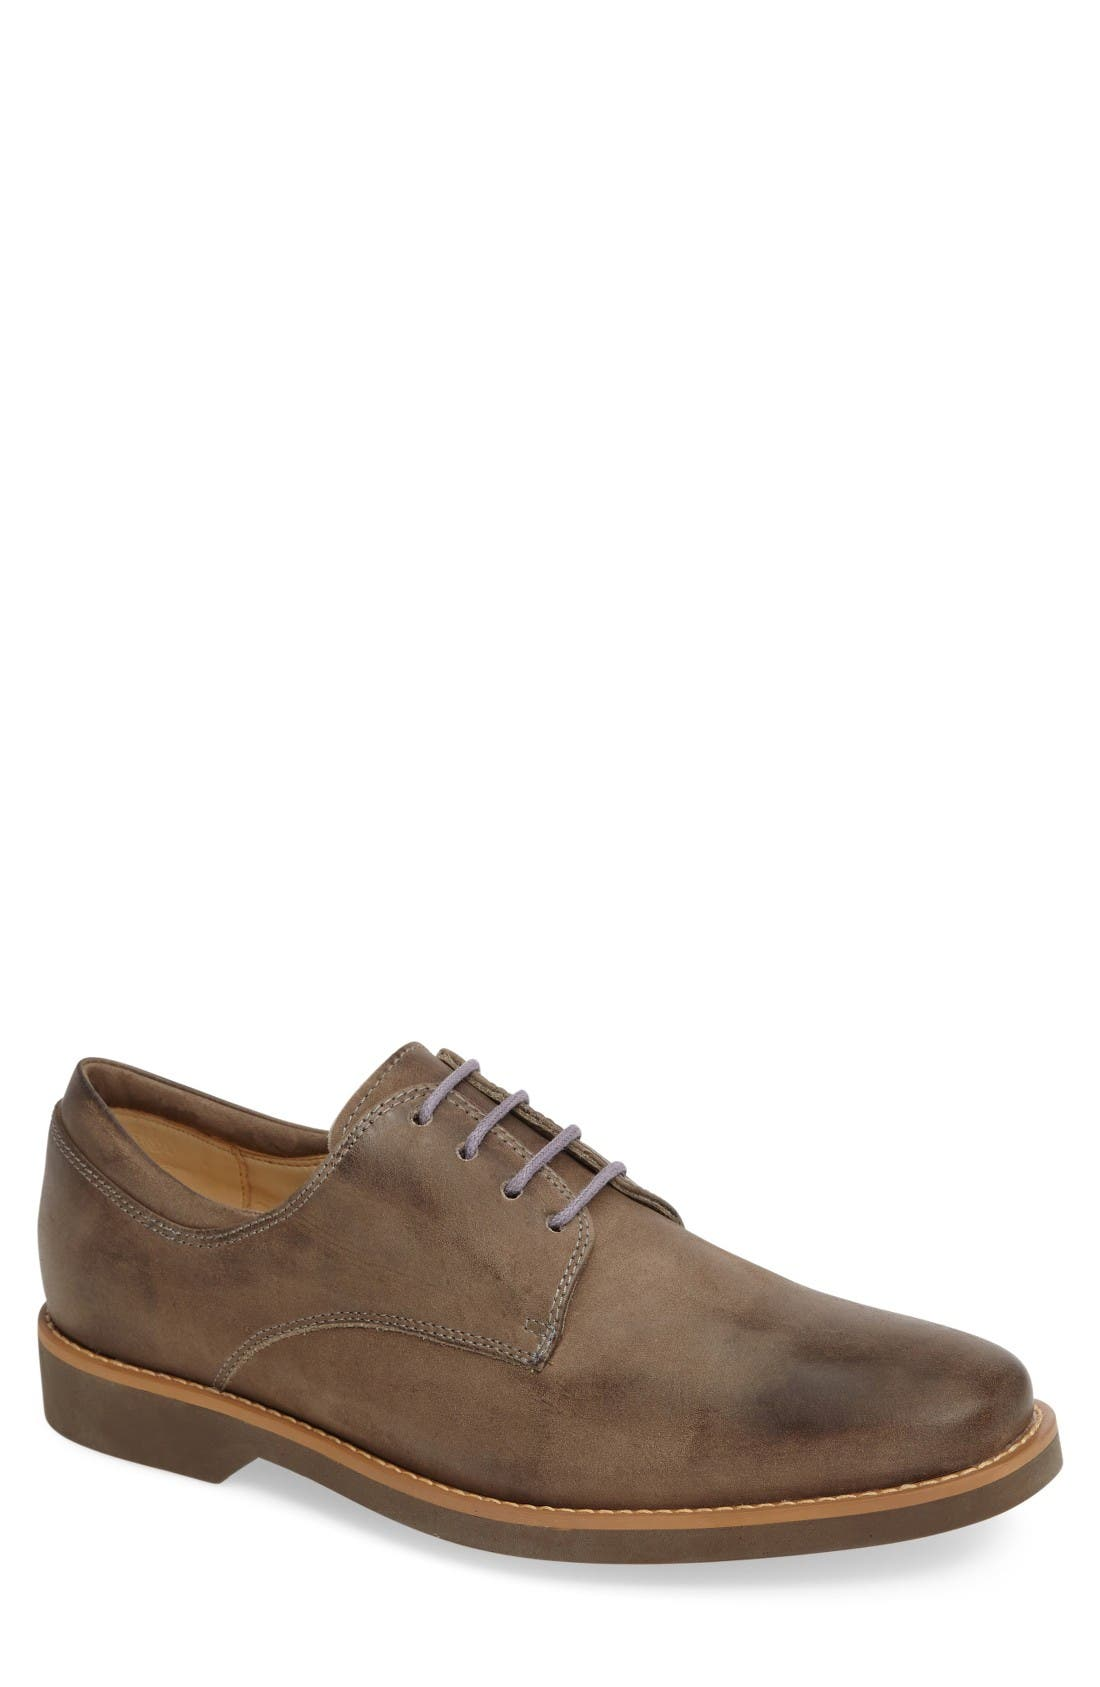 ANATOMIC & CO 'Delta' Plain Toe Derby